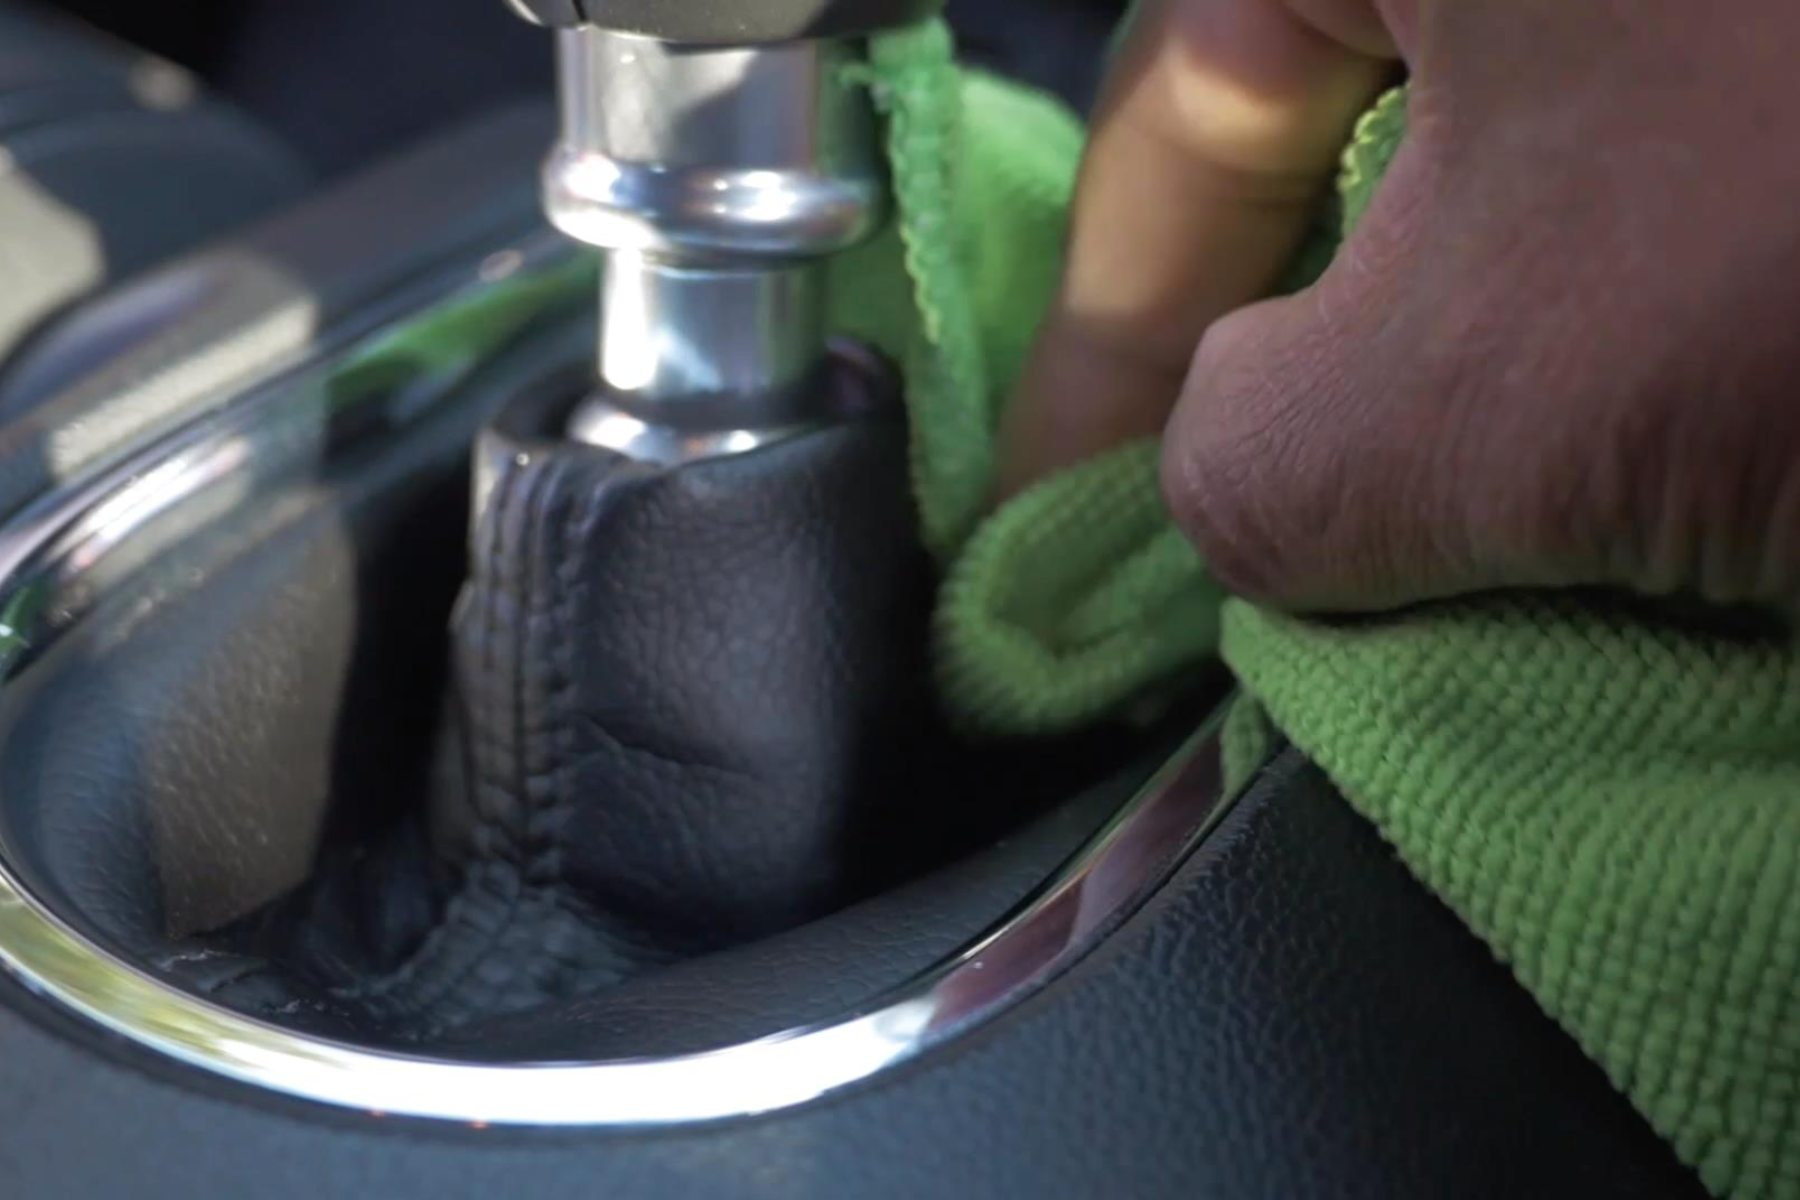 Cleaning gearstick